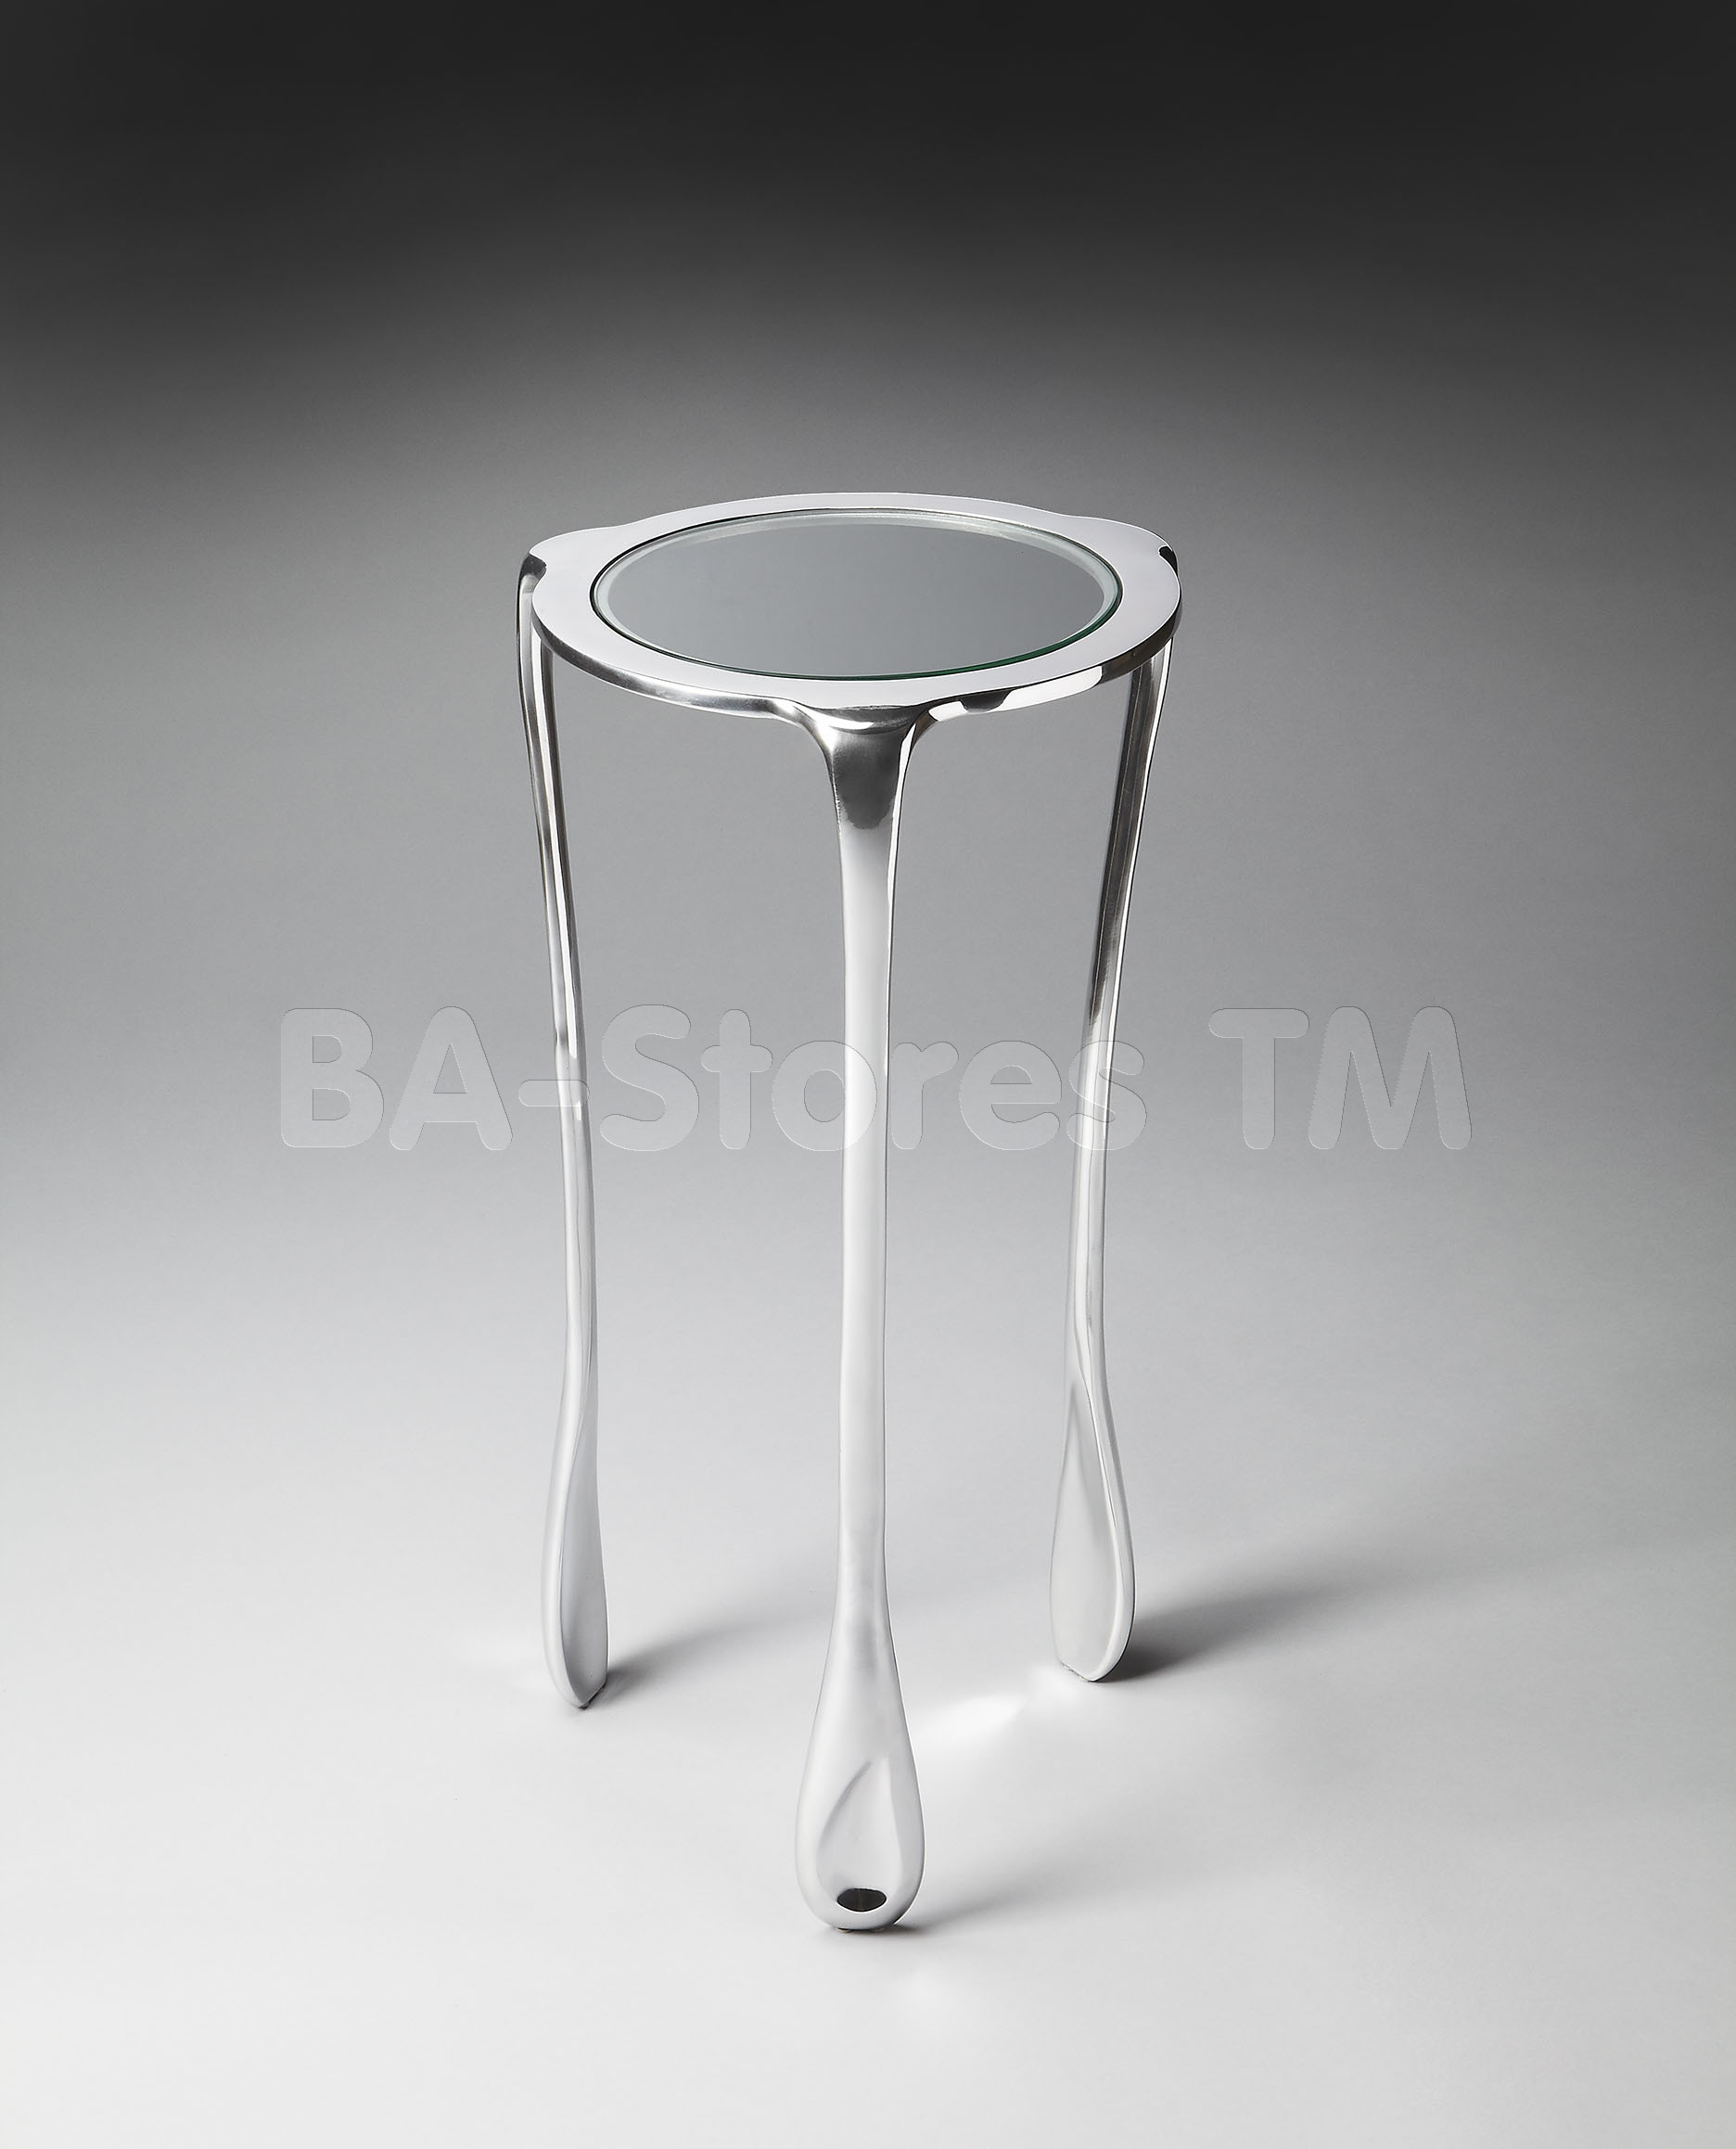 furniture elegant mirrored accent table for home ideas round with legs and chrome finish half gold inexpensive end tables narrow drawers pedestal small silver toronto cut crystal